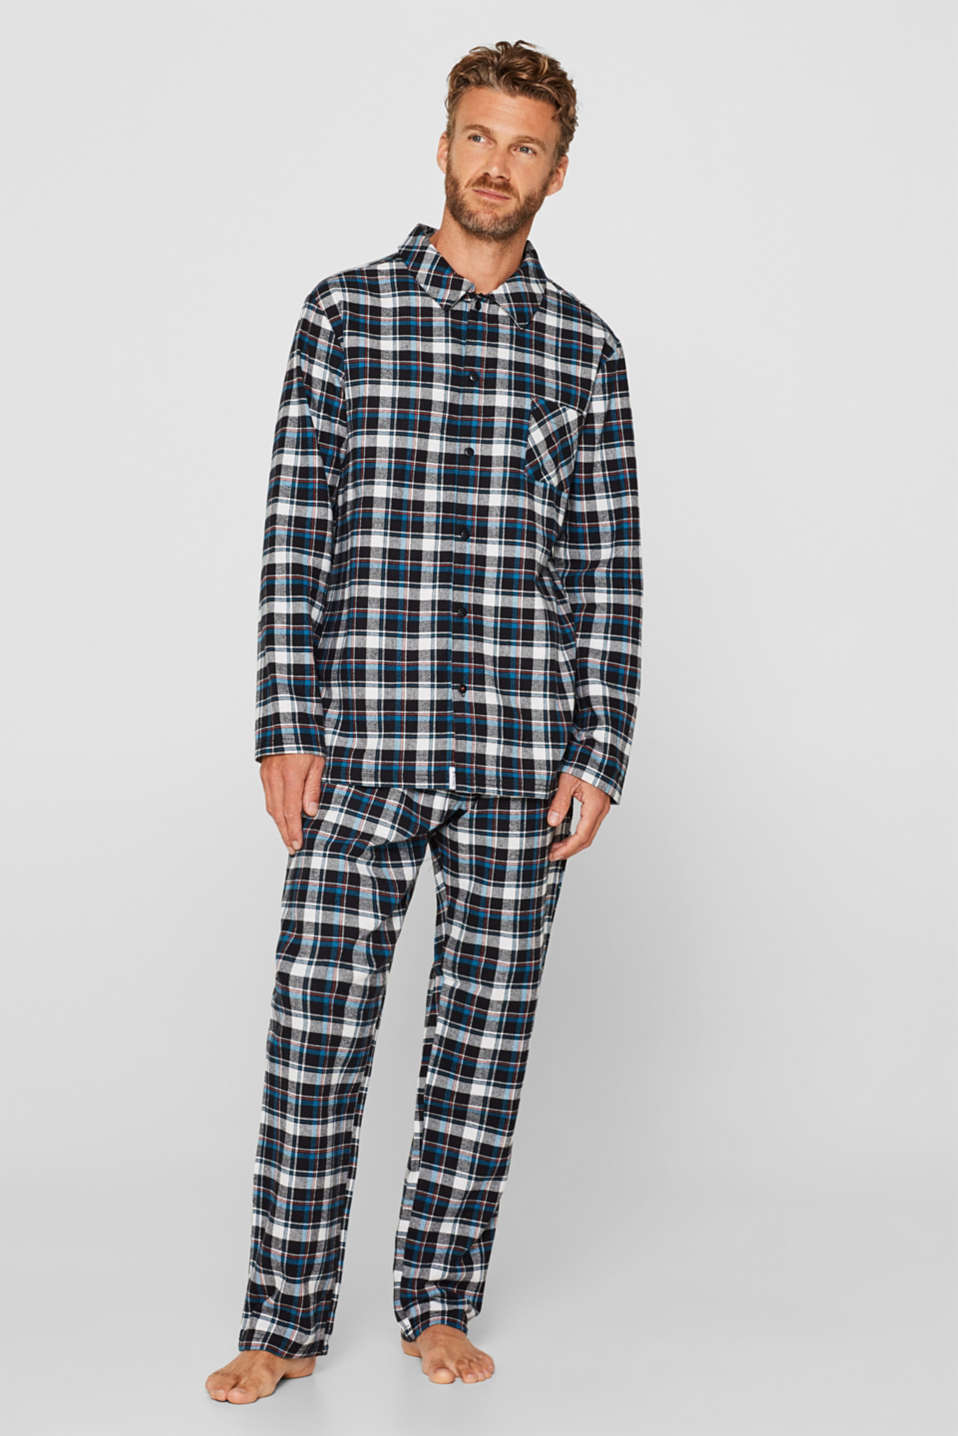 Esprit - Flannel pyjamas, 100% cotton